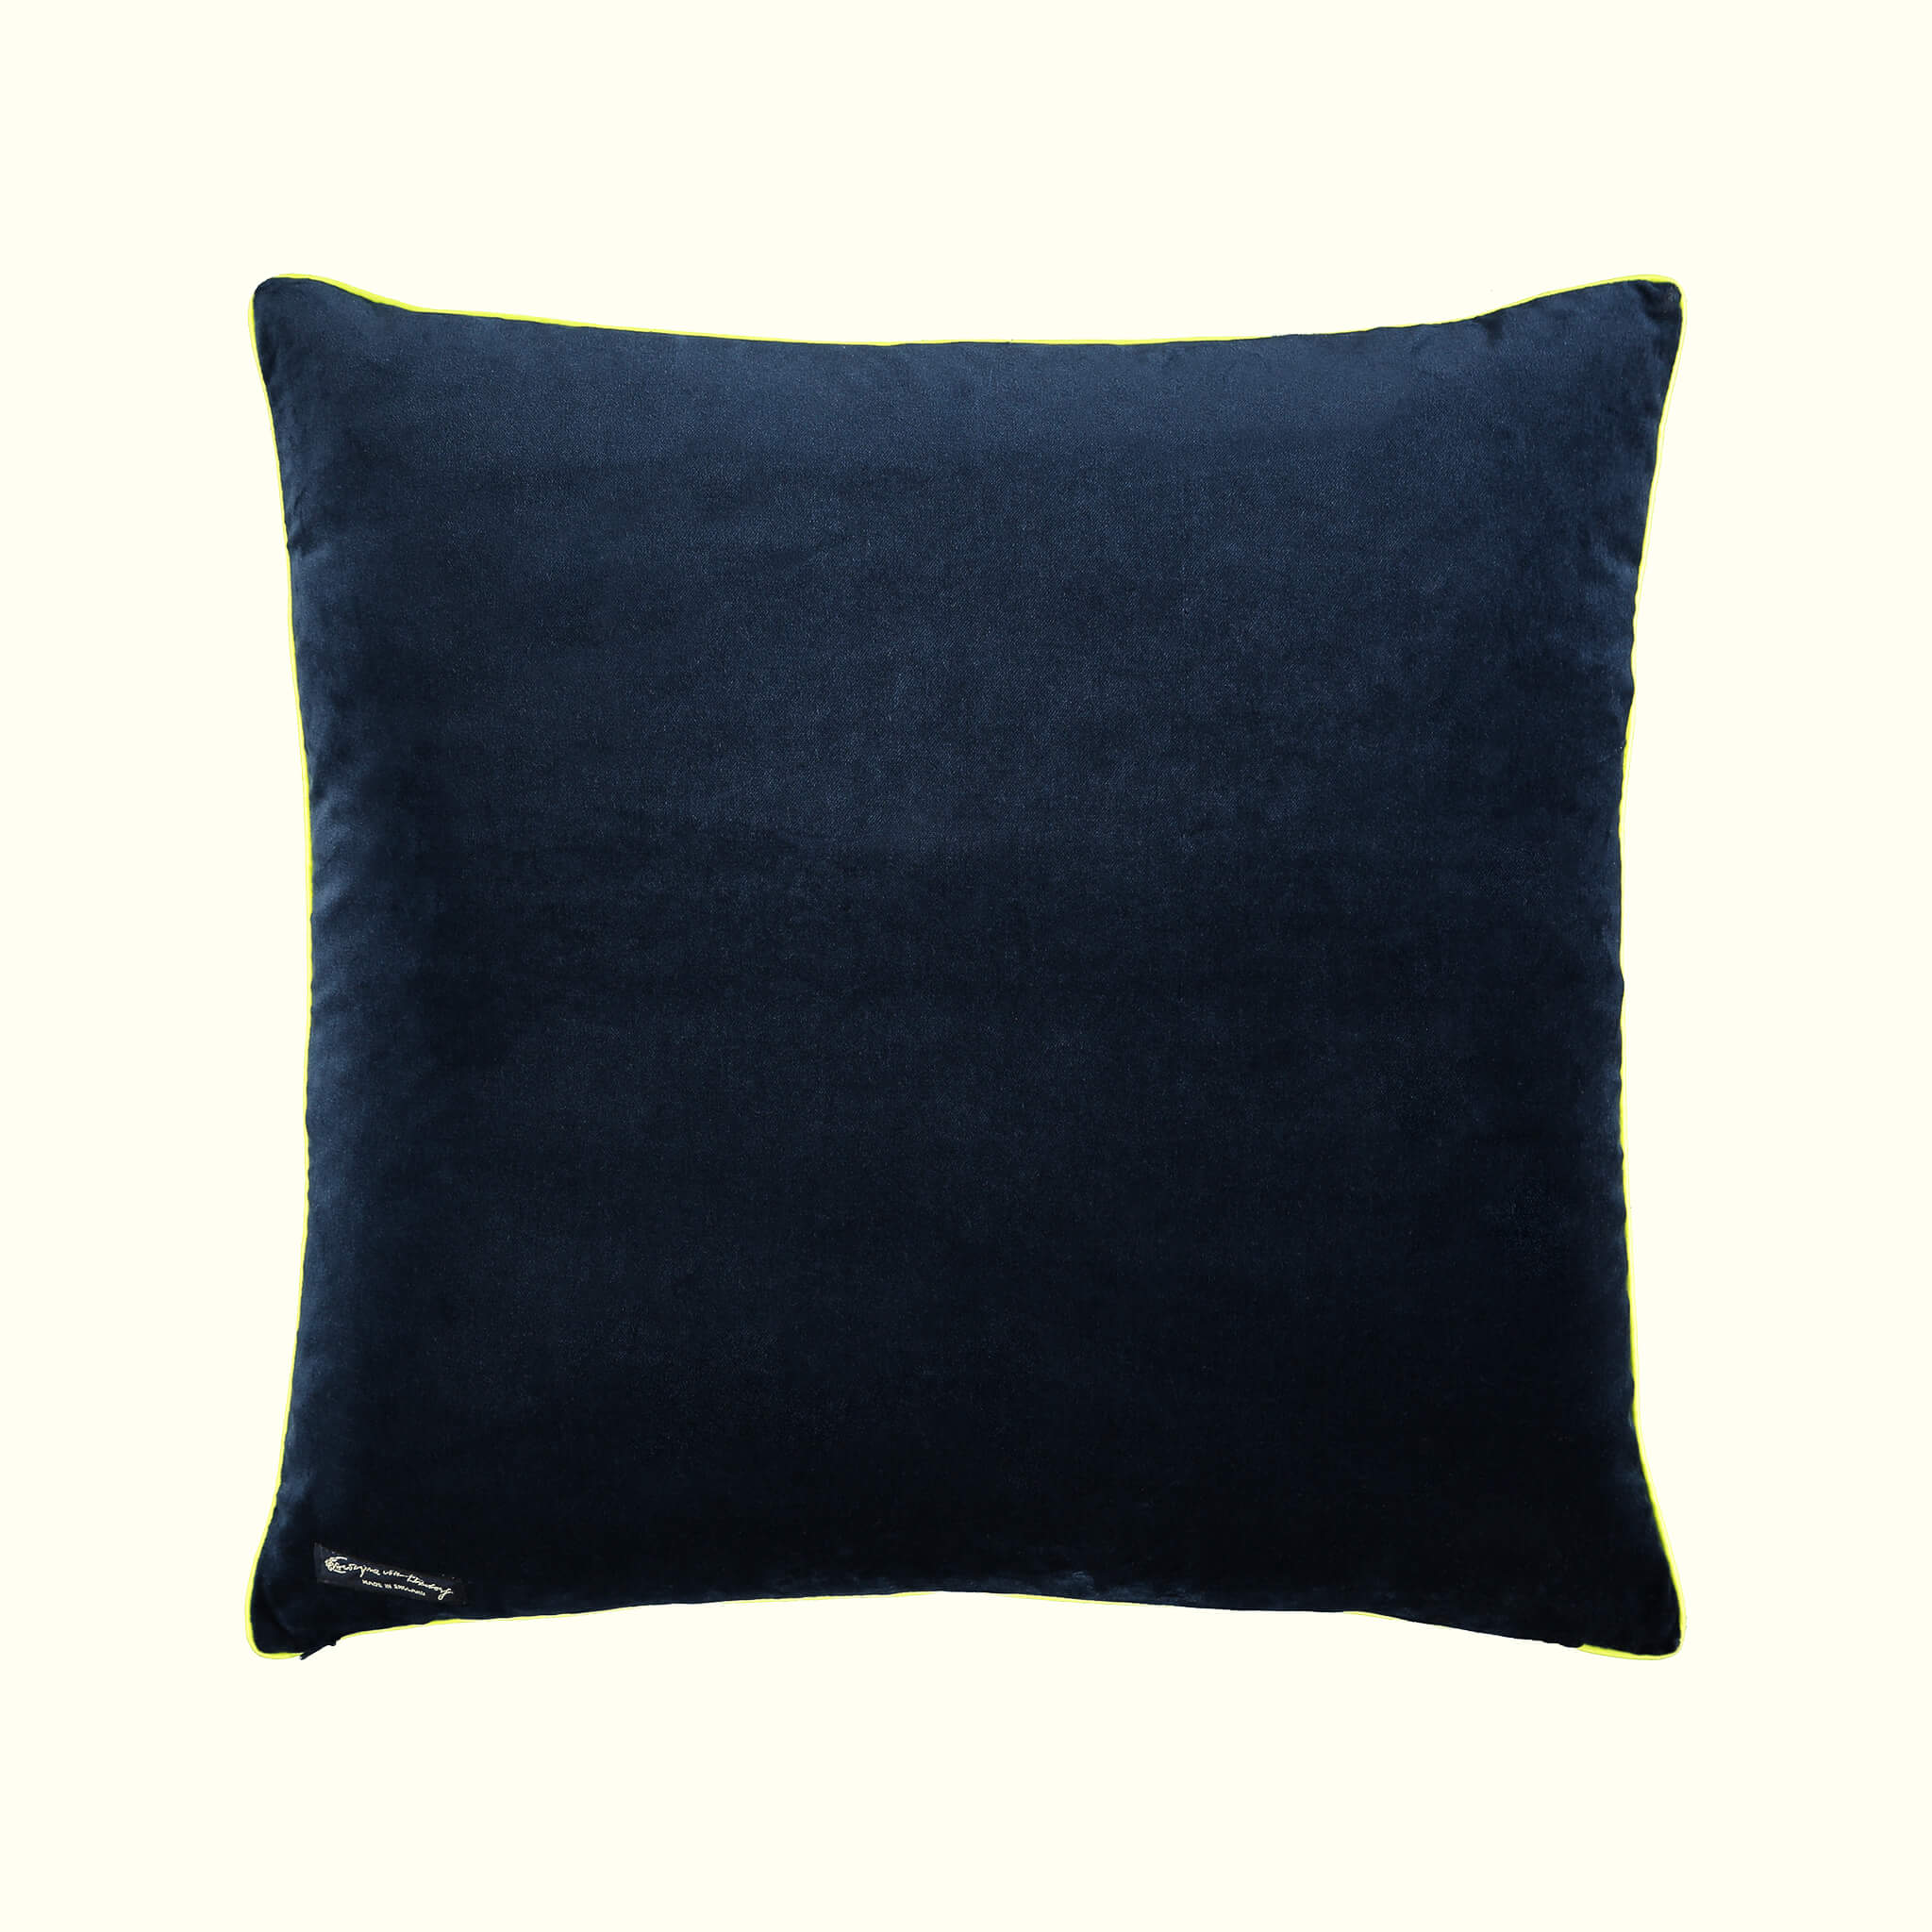 A luxury British cotton velvet cushion by GVE in navy and gold Aurora print design.